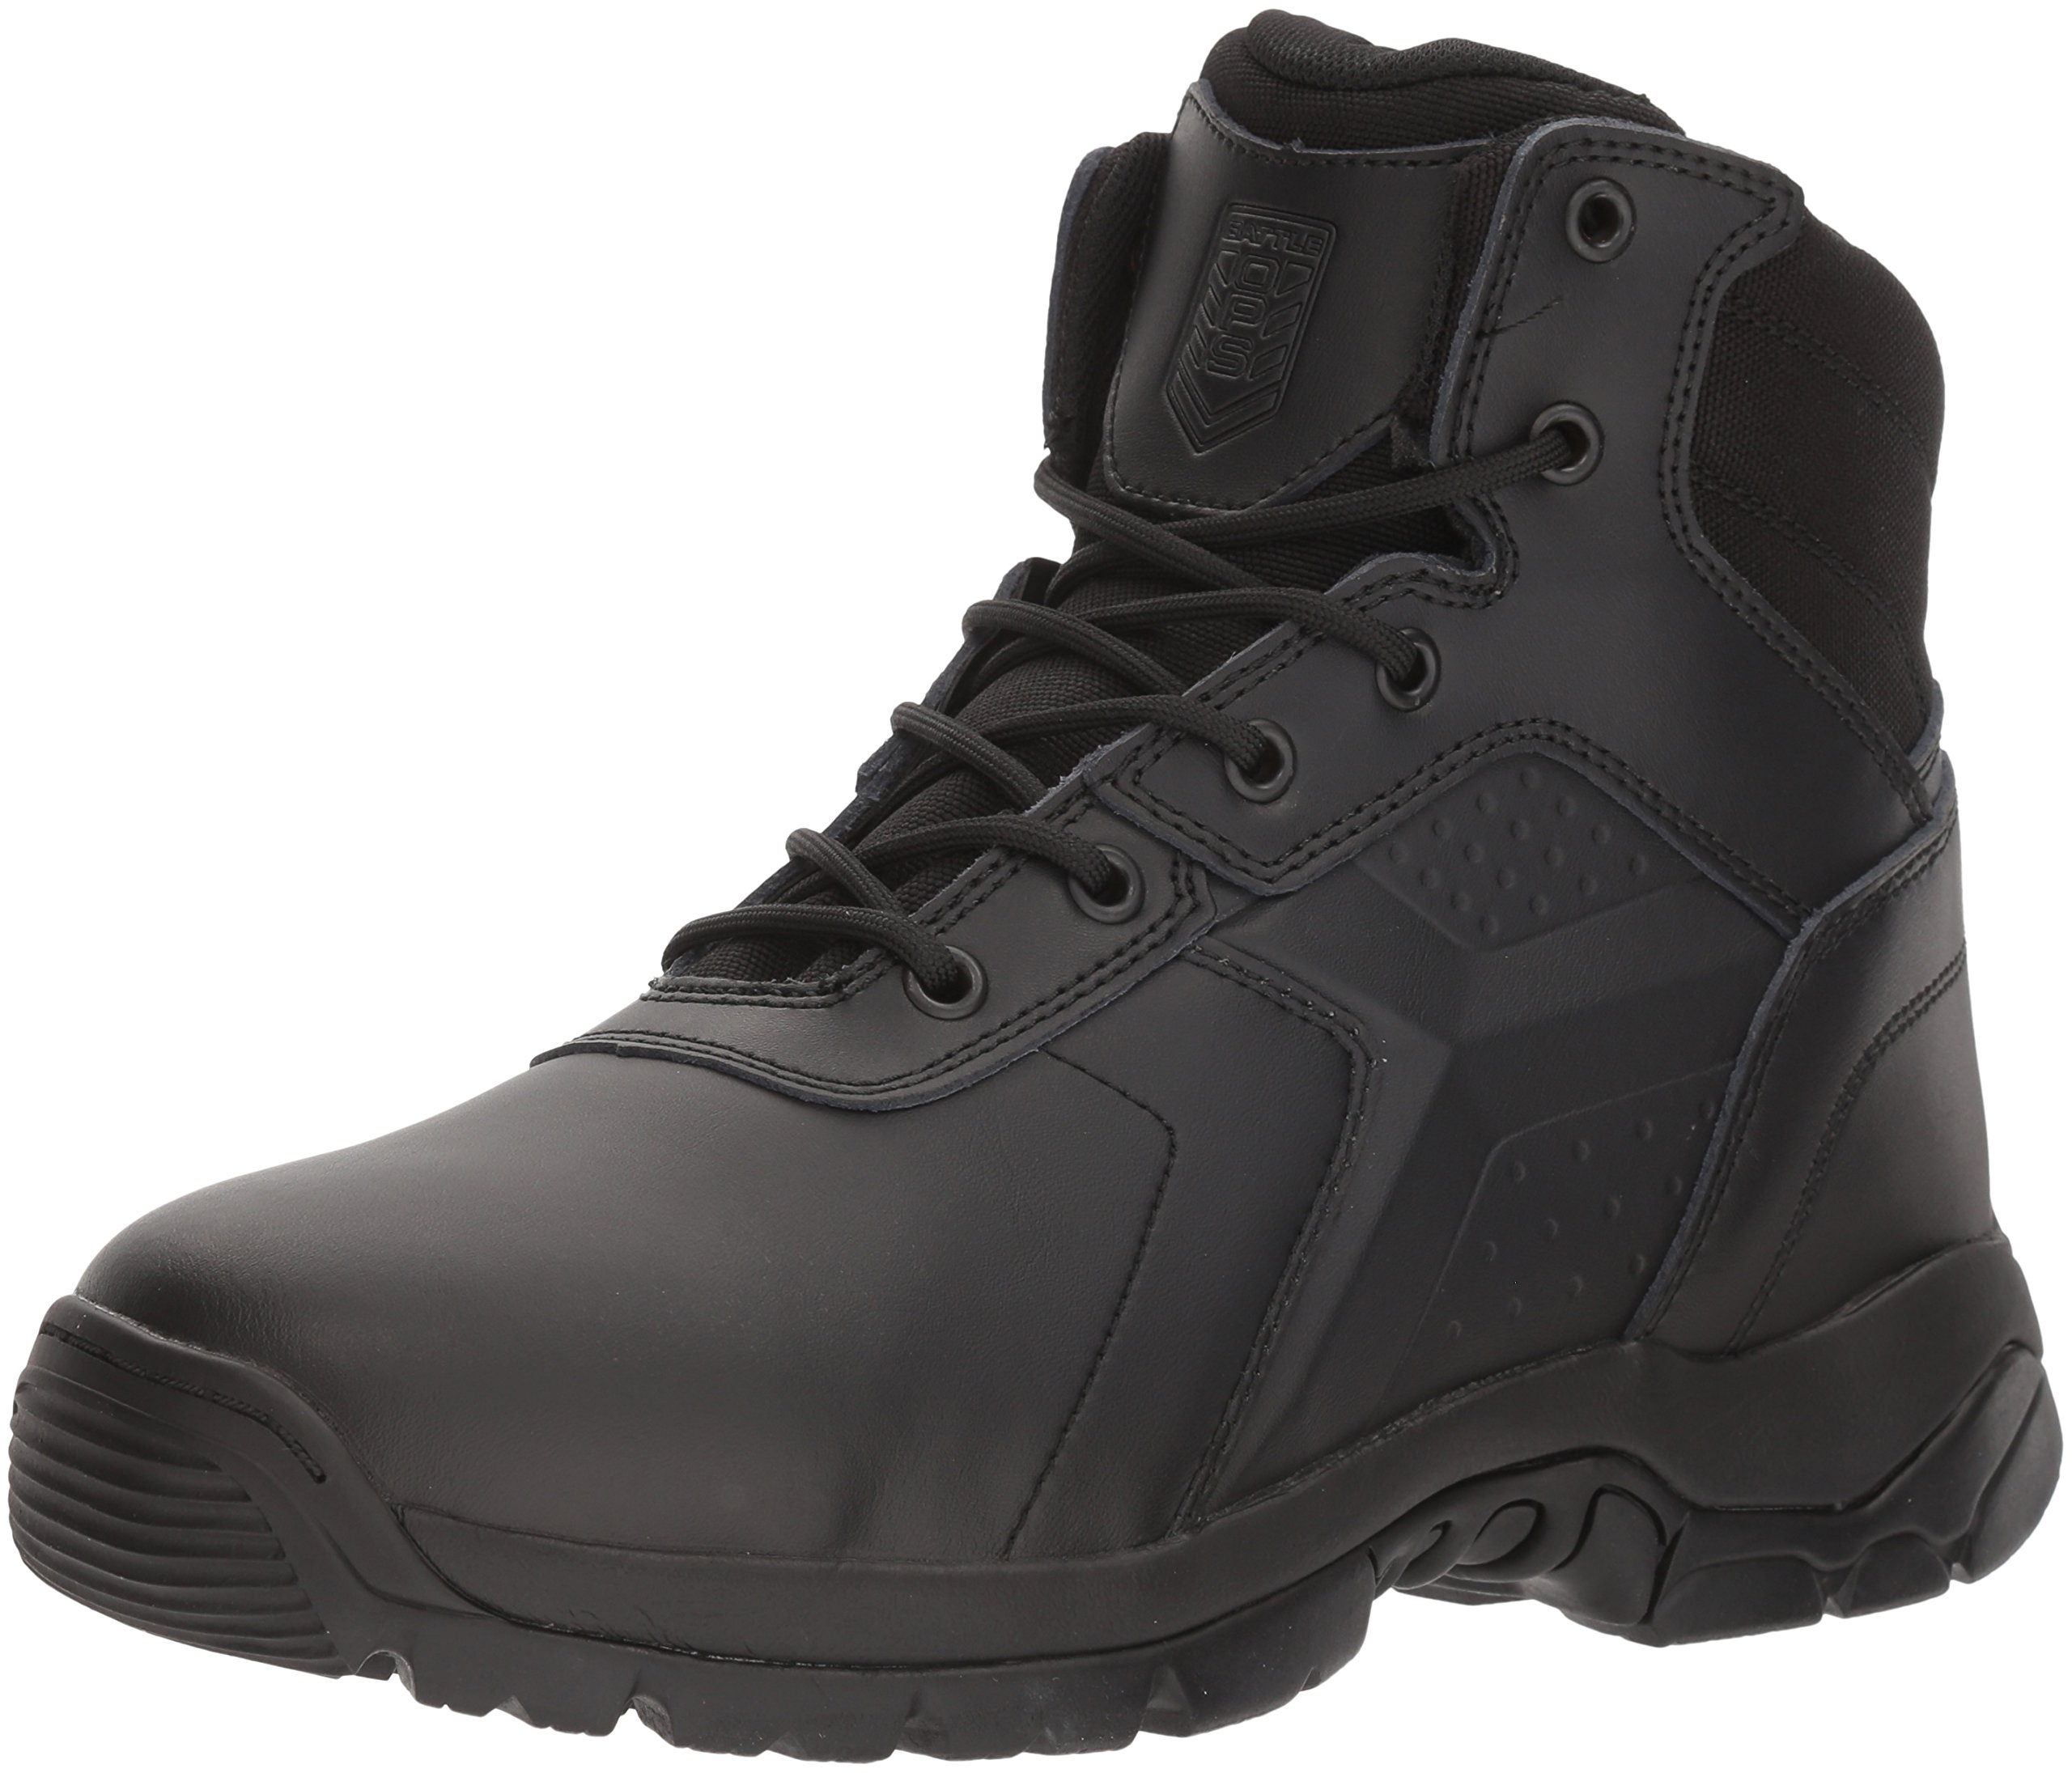 Battle Ops Men's 6 inch Waterproof Soft Toe BOPS6001 Military and Tactical Boot, Black, 11.5 M/W Multi Fit Medium Wide US